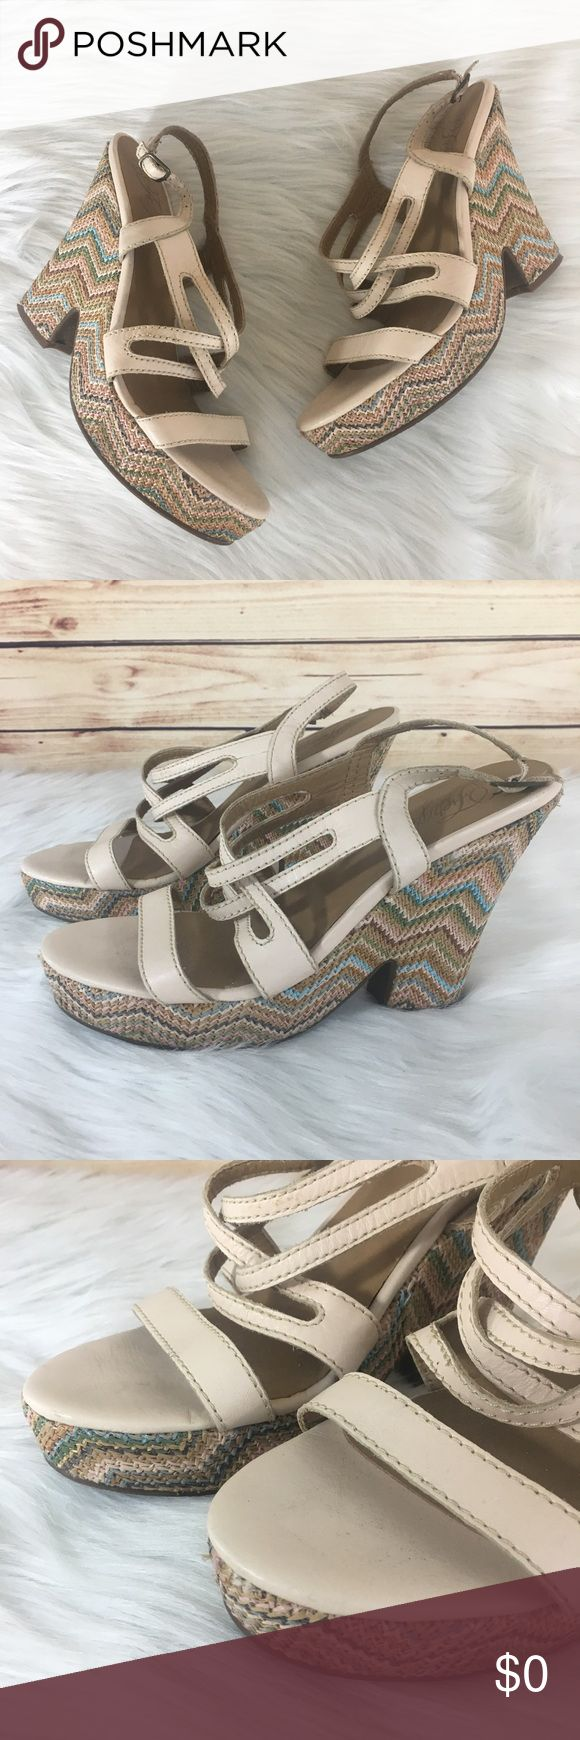 """👡 Fergie chevron straw wedges ✨Newly listed items are priced to move.. please help me clear out my actual closet 😉  Preloved / Fergie chevron straw wedges from Nordstrom Rack Size 10, fits true to size Copper hardware / strap and buckle closure Wedge height: 5"""" Platform height: 1"""" *Shoes show wear (may have dirt, scuffs, scratches, rubbing) *Comes without shoebox but will be packaged in a usps shipping box.  ✨Build a bundle with all your likes and use the automatic bundle discount -or…"""